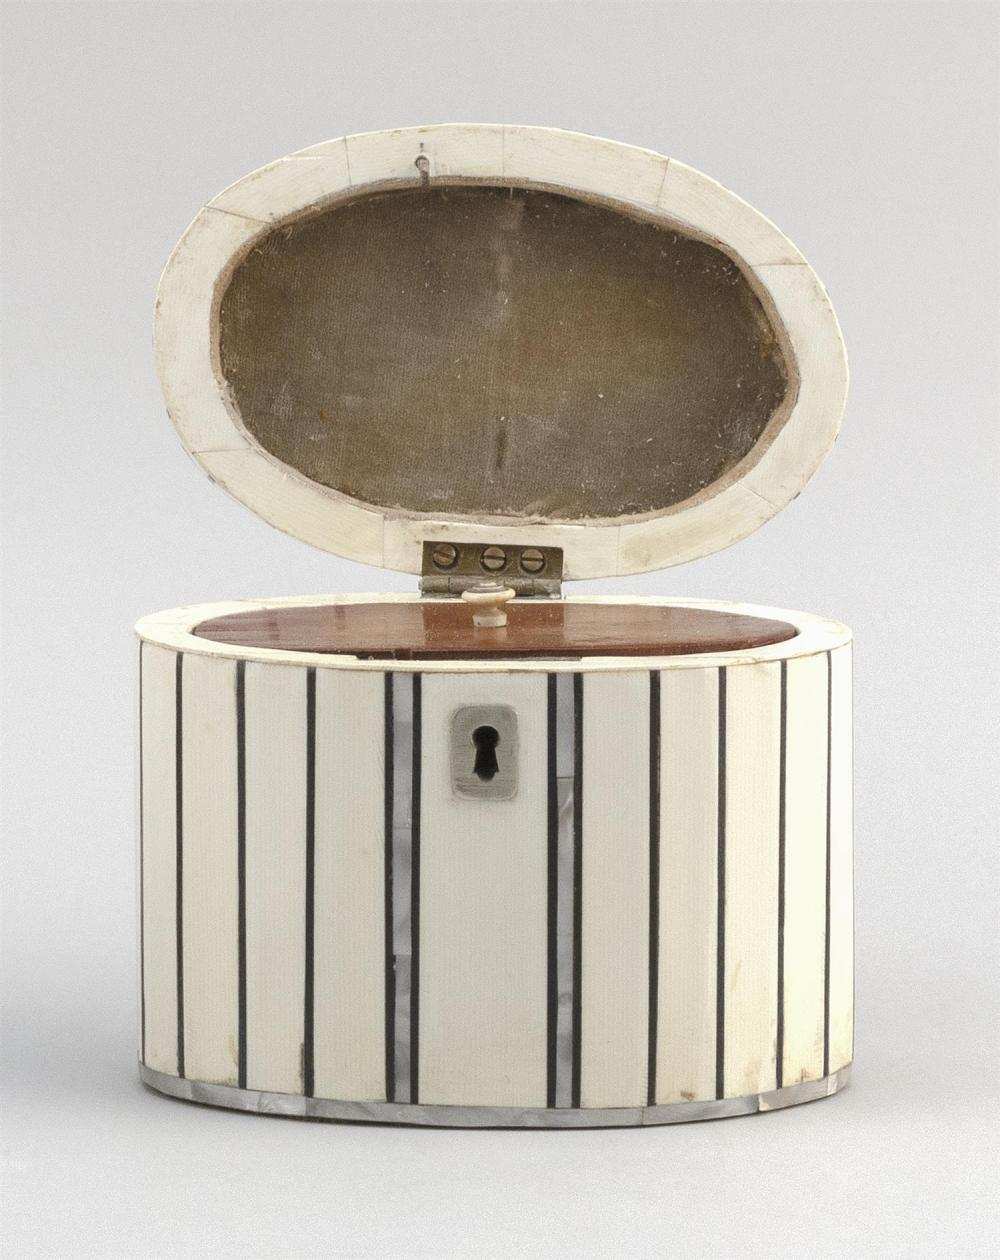 ENGLISH BONE, ABALONE AND SILVER PLATED OVAL TEA CADDY With lift top and fitted interior. Height 4.25